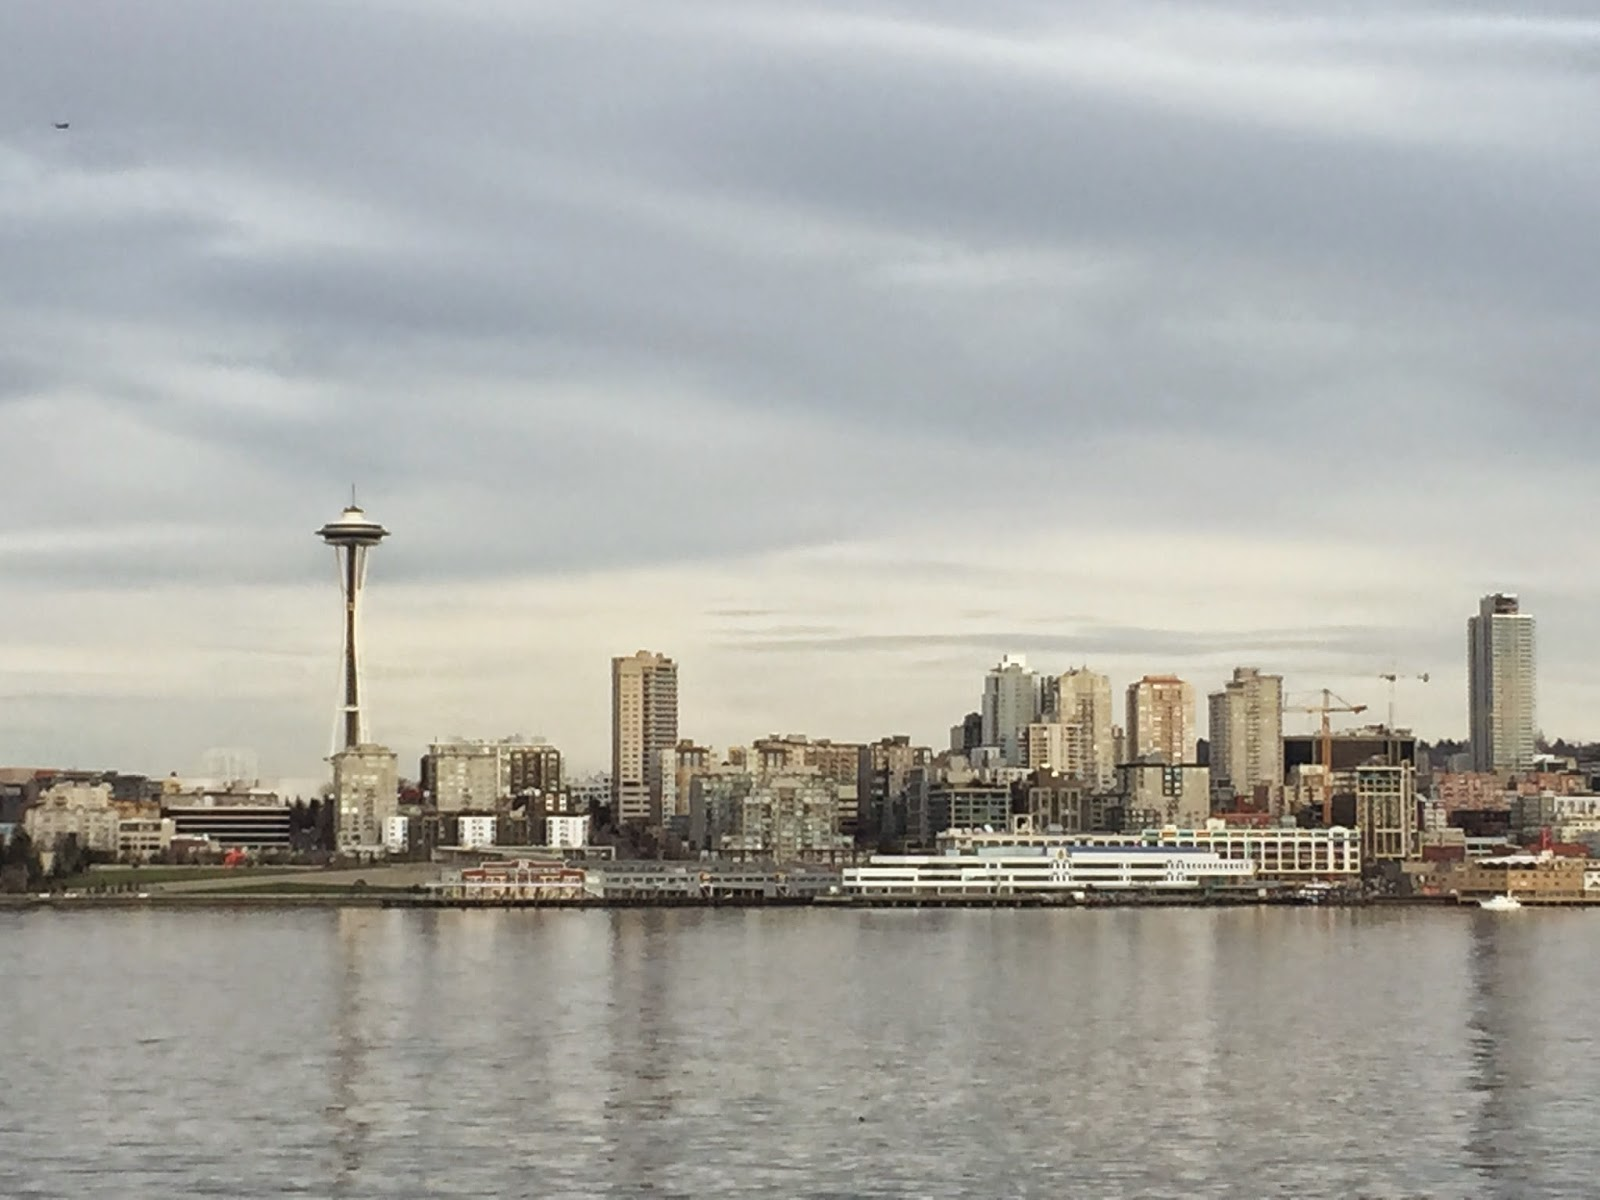 Can You Get To Bainbridge Island Without Taking Ferry